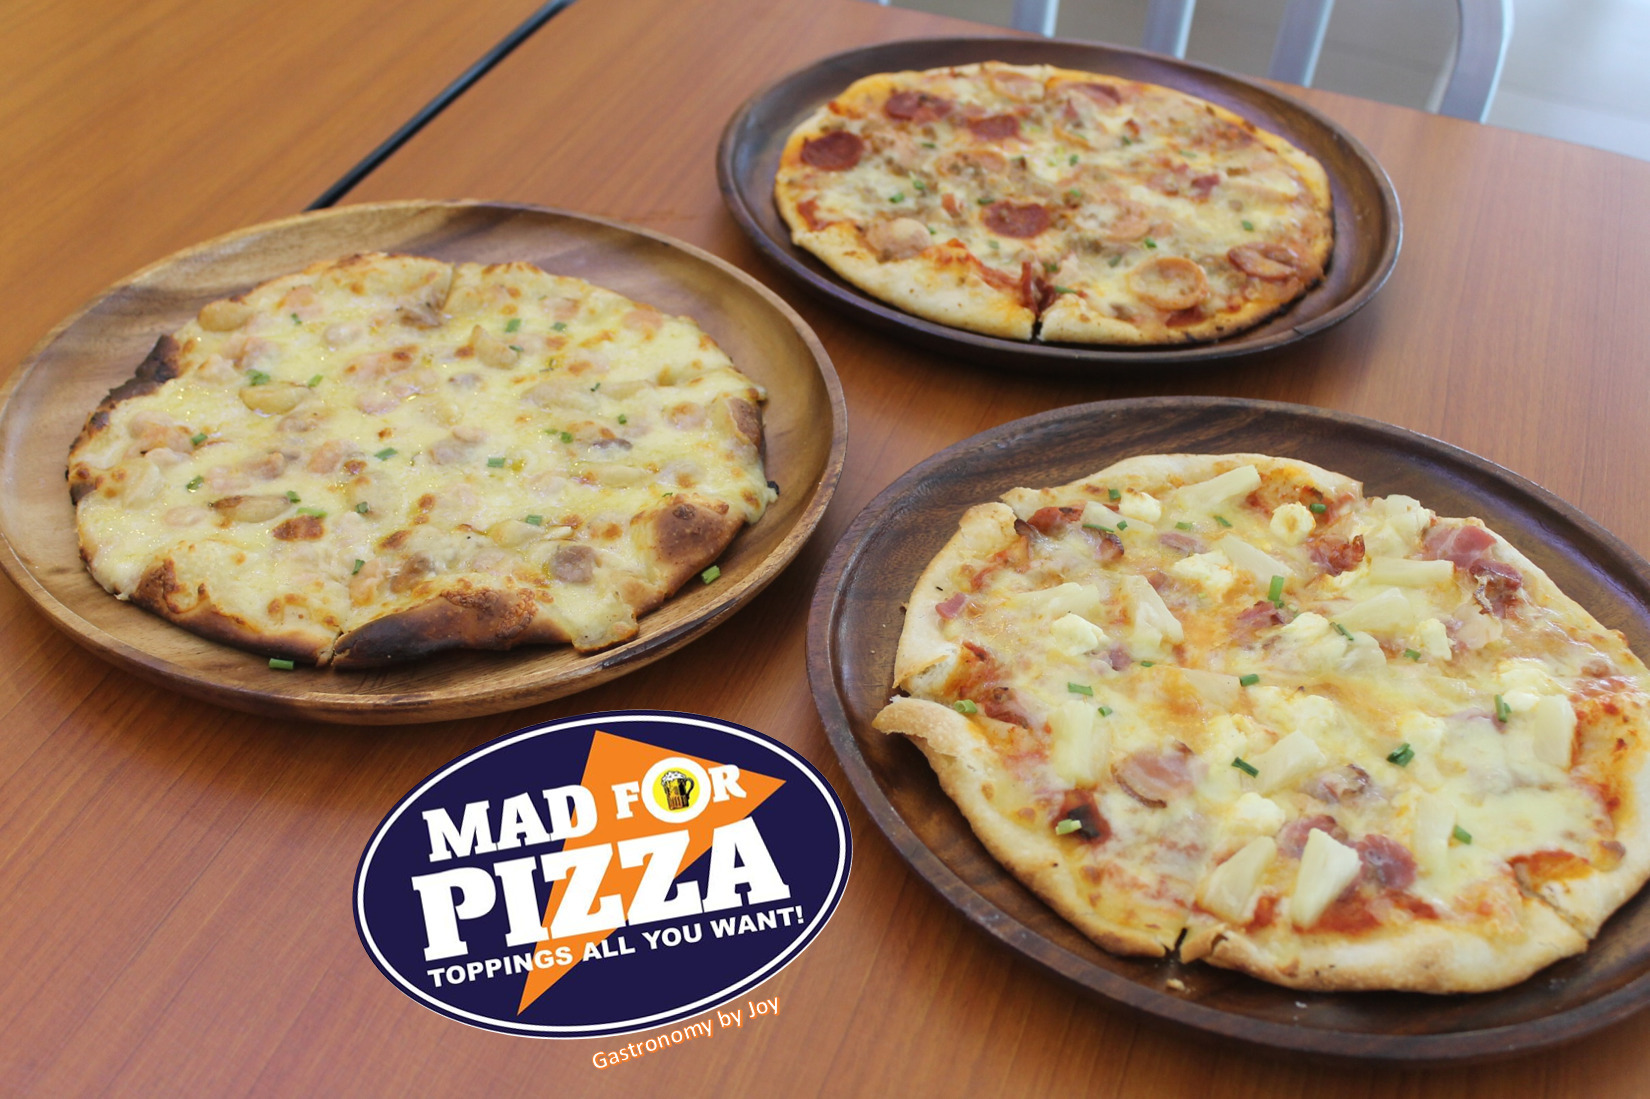 Mad for Pizza, Toppings All You Want!